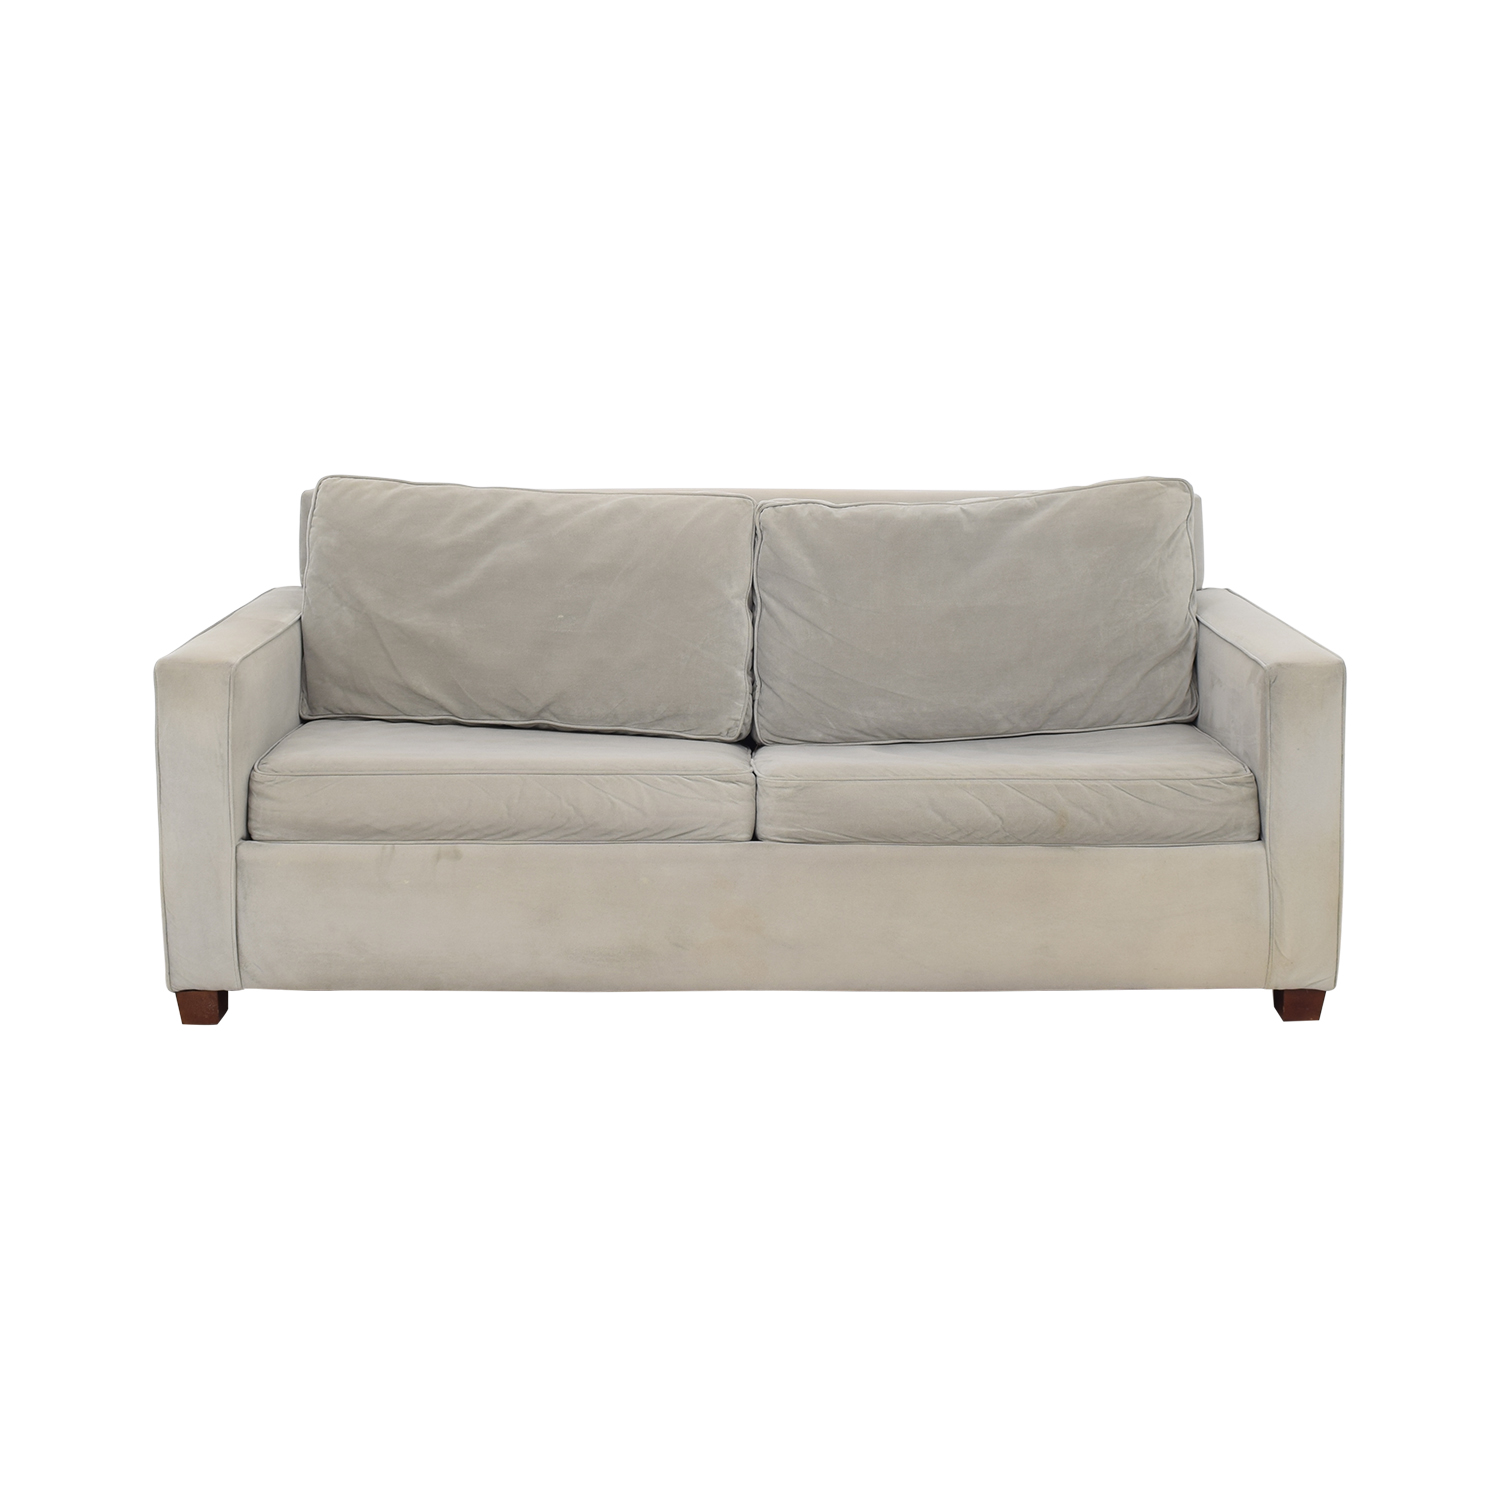 West Elm West Elm Henry Queen Sleeper Sofa Sofa Beds